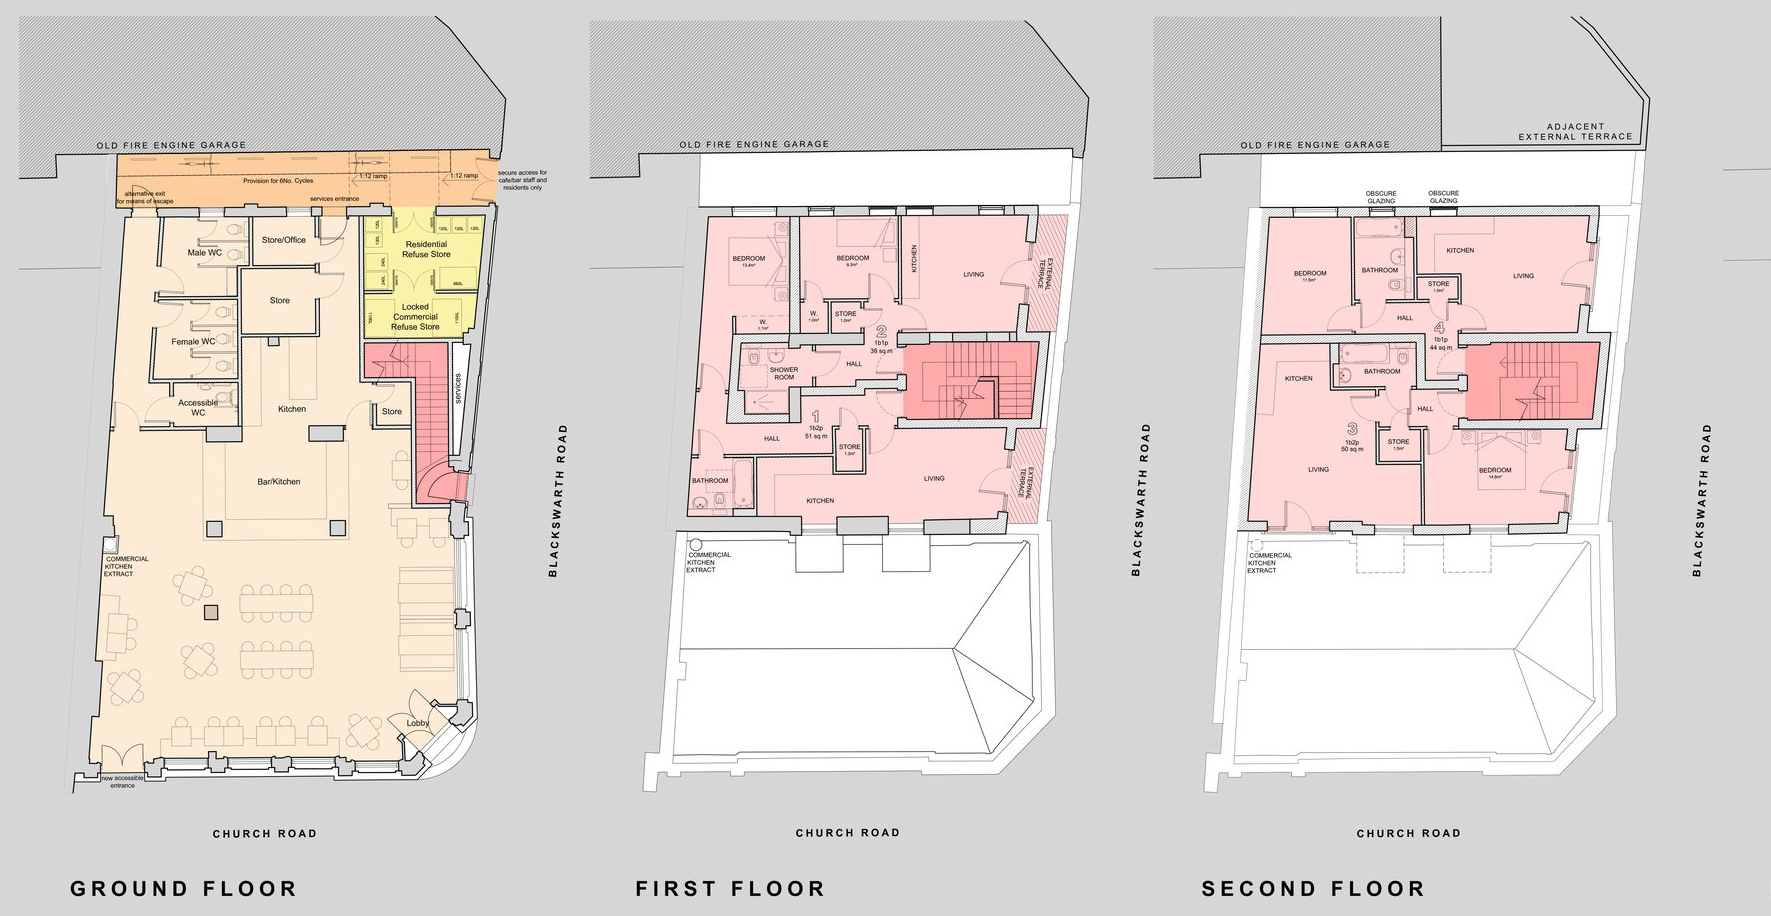 2538 P201_A Proposed Plans.jpg